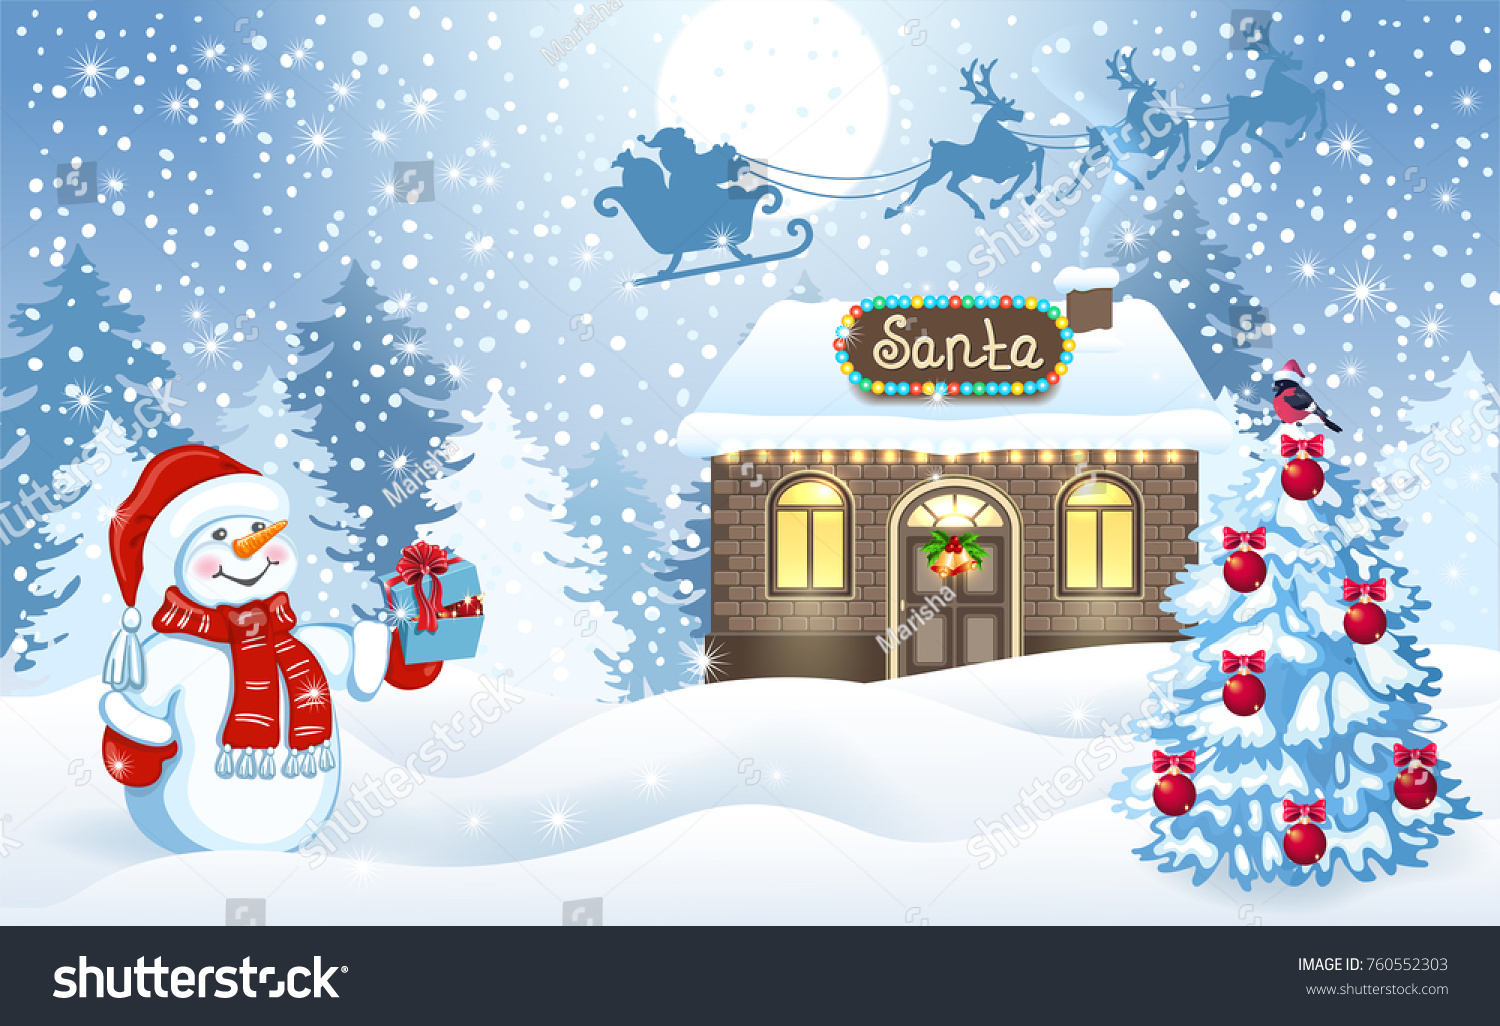 Christmas Card Funny Snowman Holding Gift Stock Vector (Royalty Free ...